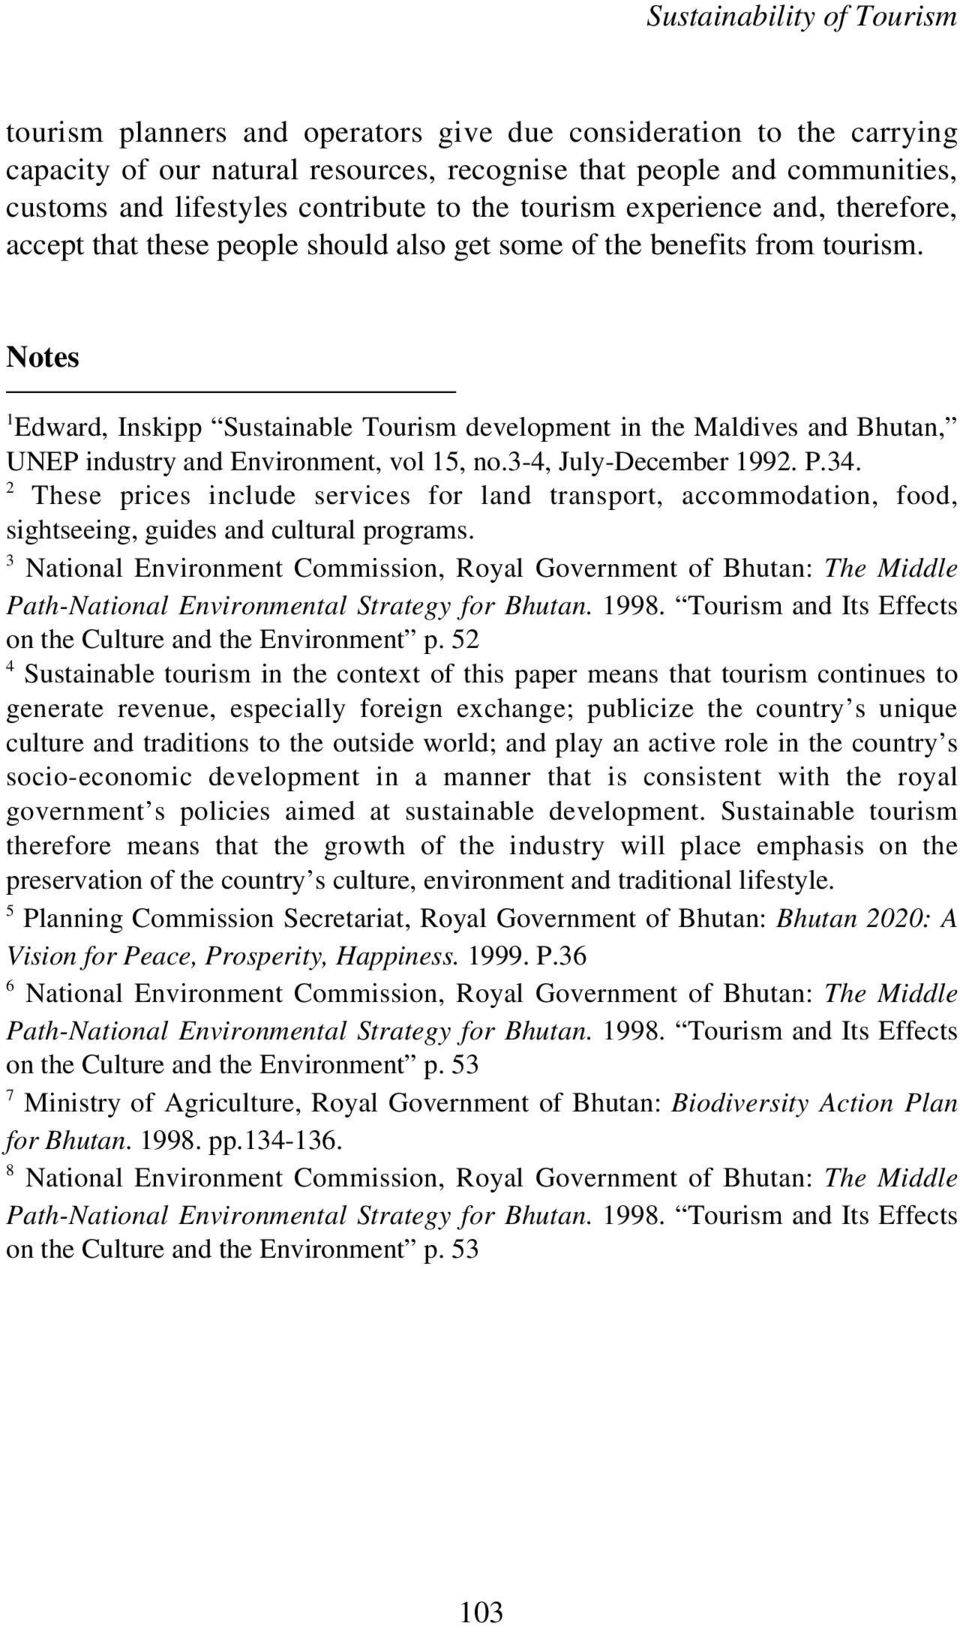 Notes 1 Edward, Inskipp Sustainable Tourism development in the Maldives and Bhutan, UNEP industry and Environment, vol 15, no.3-4, July-December 1992. P.34.